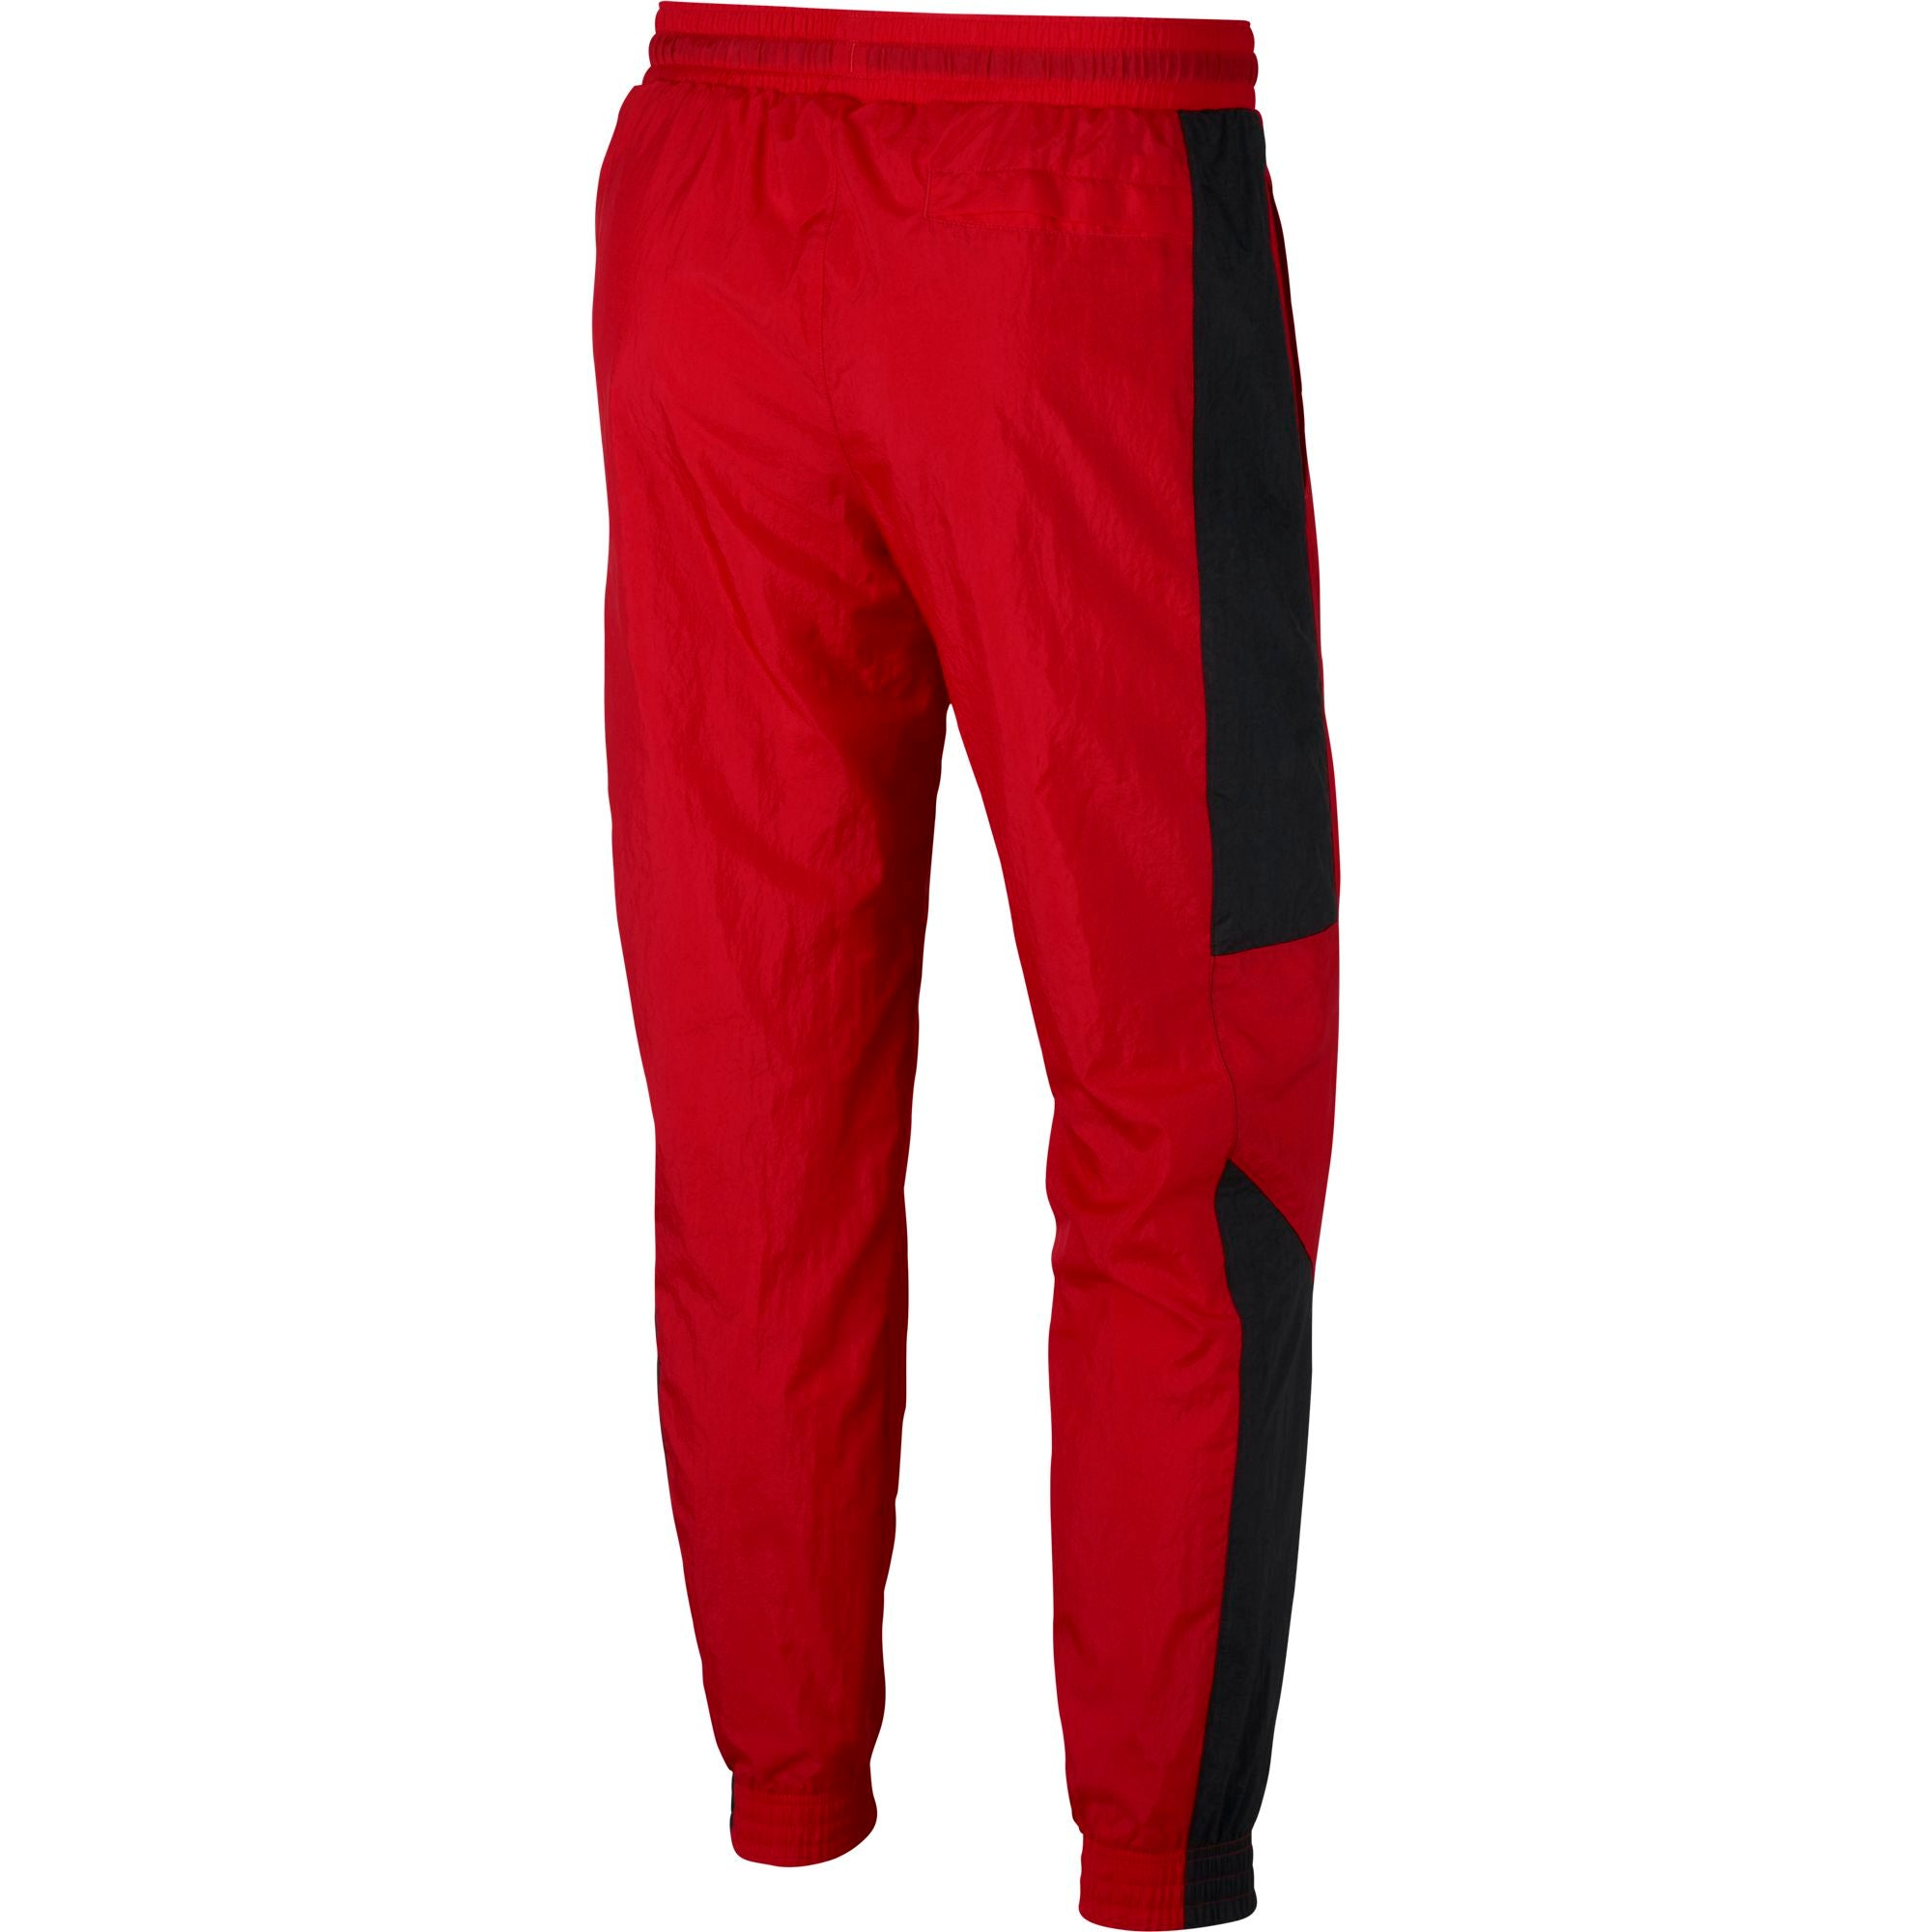 Nike Basketball Woven Lightweight Pants - University Red/Black/White